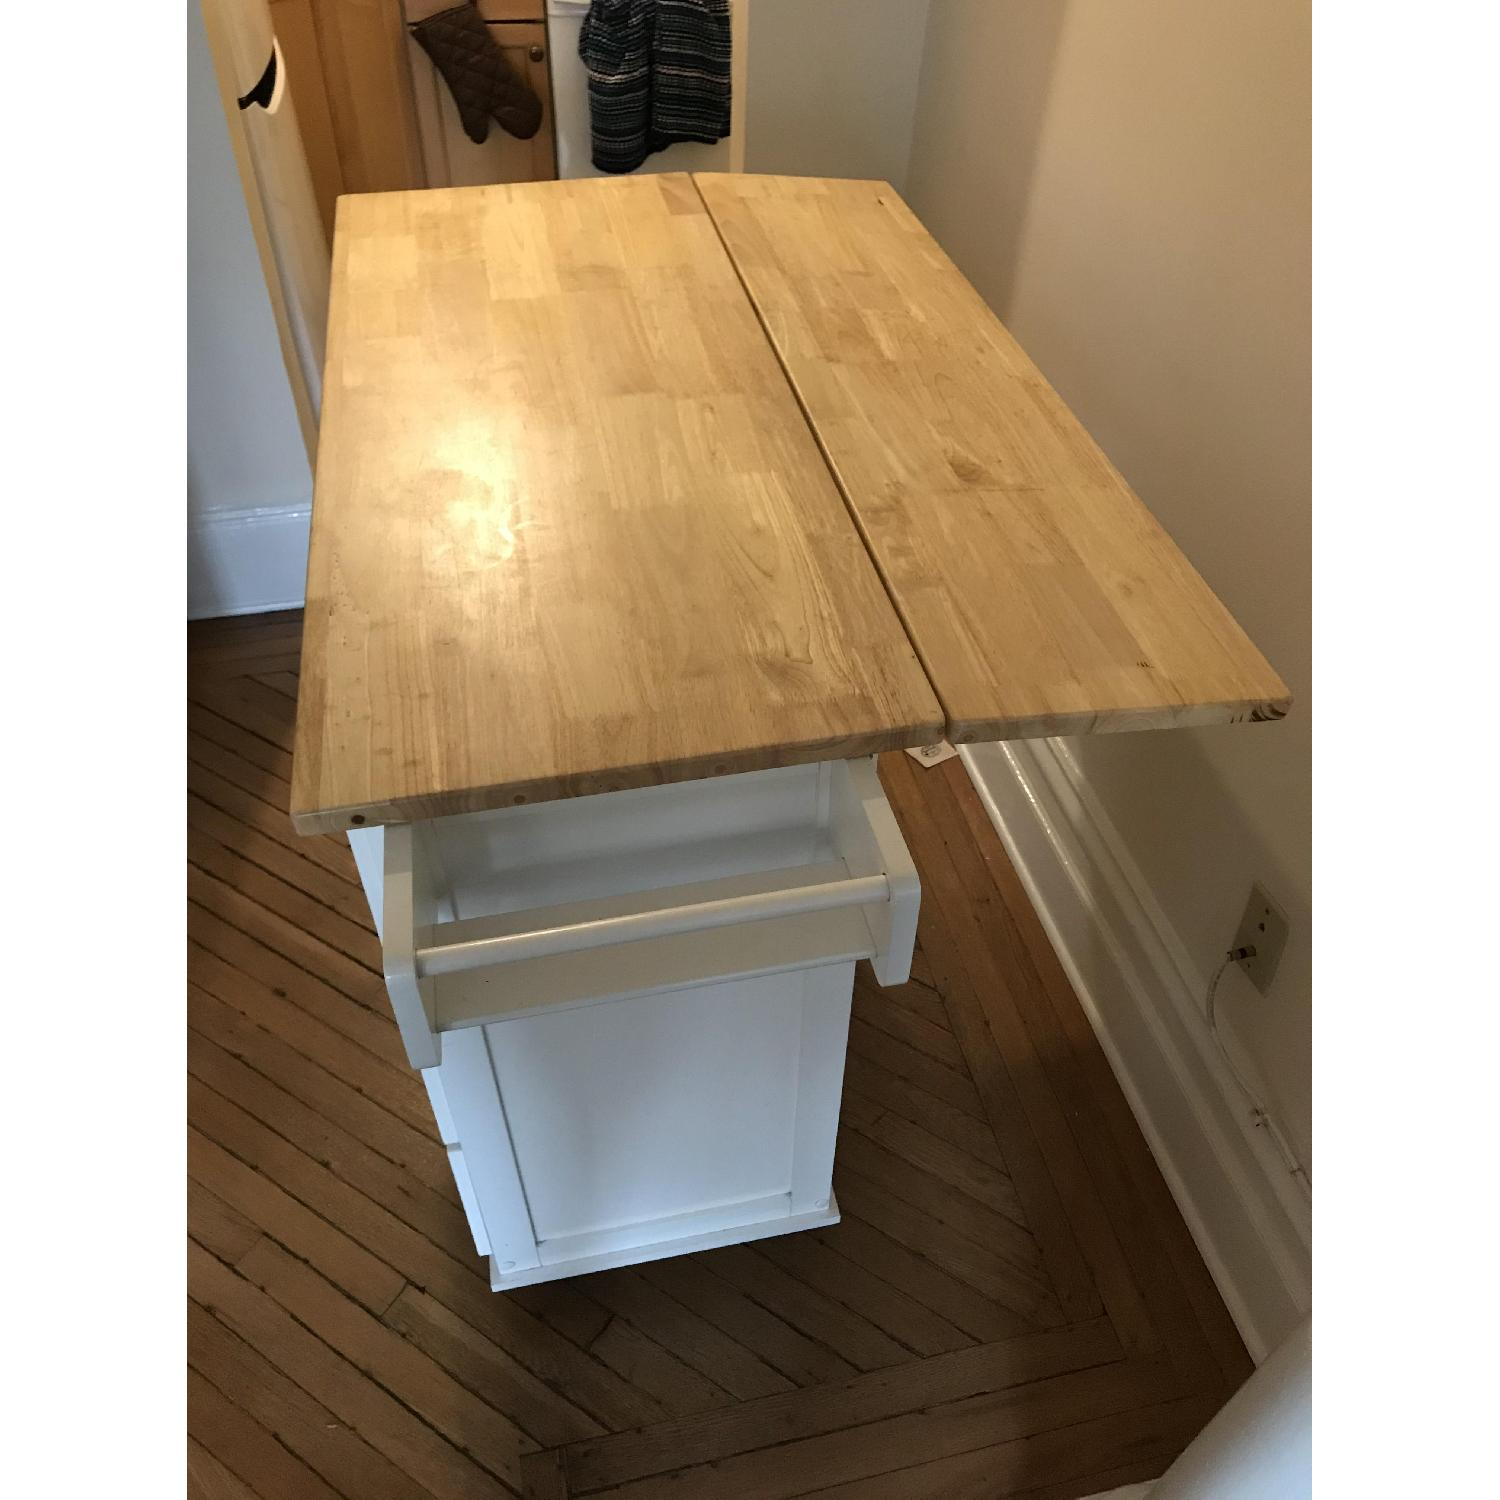 Arpdale Kitchen Island w/ Natural Wood Top-2